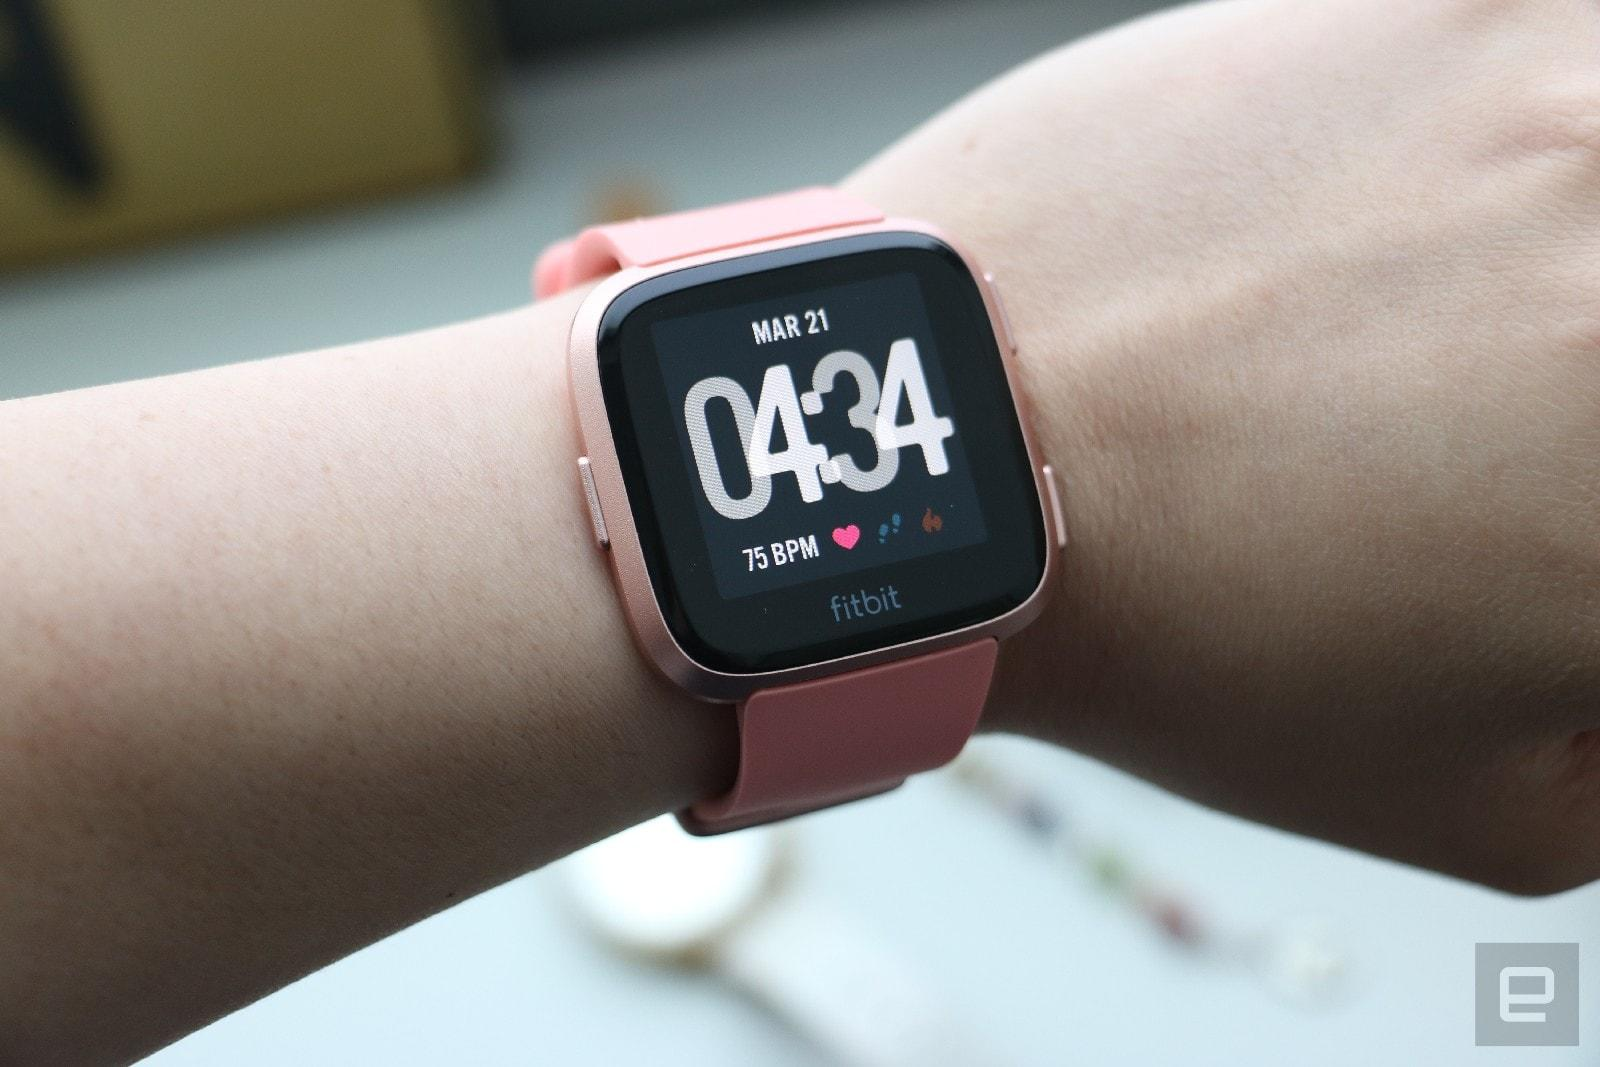 Fitbit Versa review: A stylish smartwatch at the right price